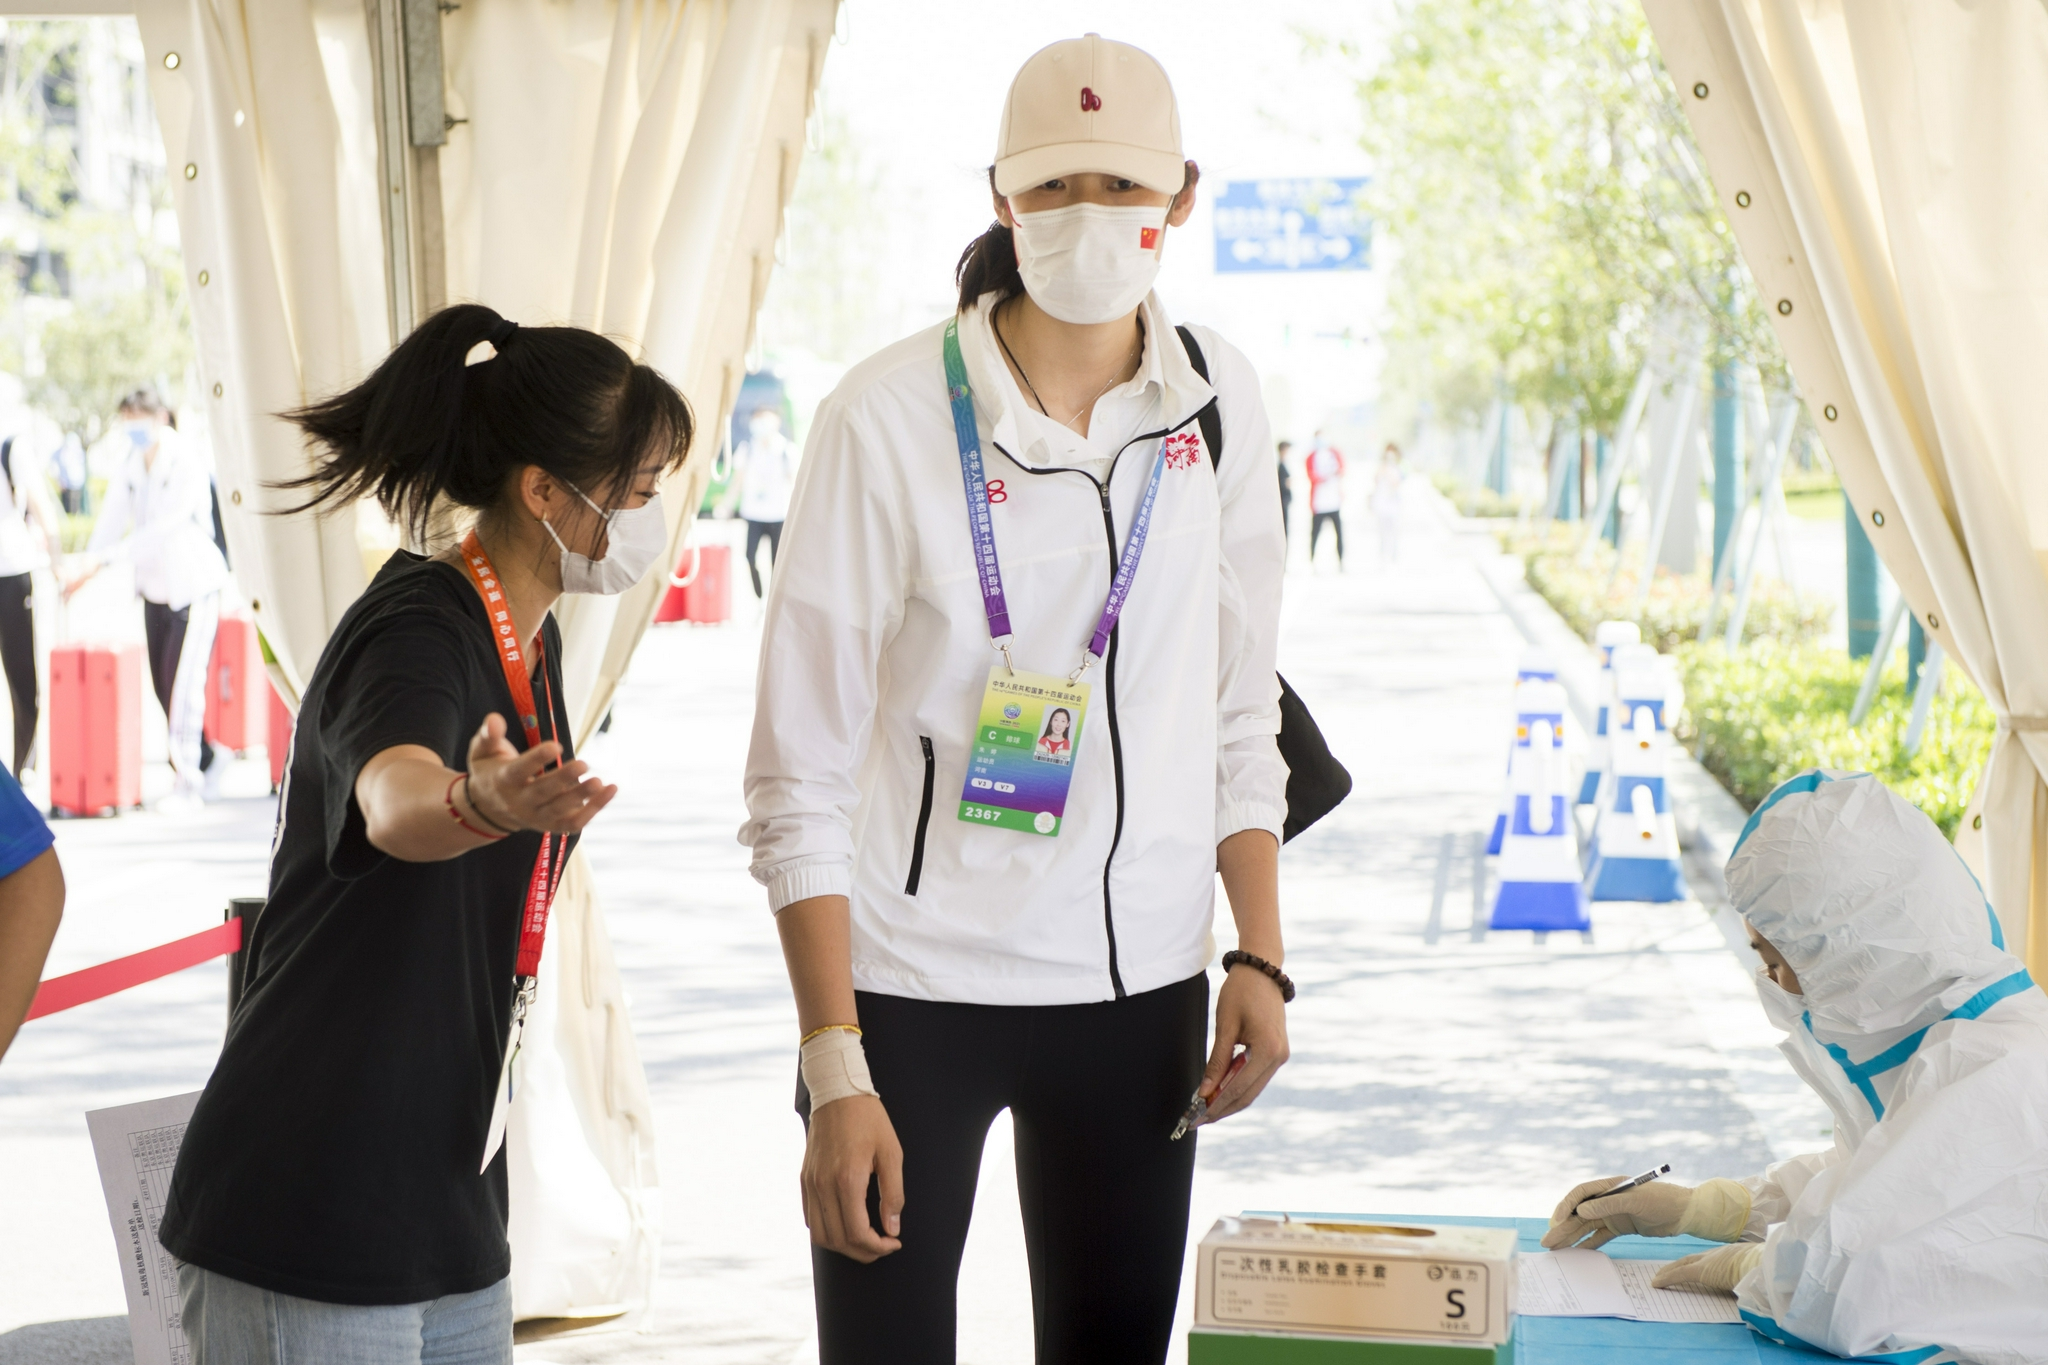 Zhu Ting came to the National Games arena with injuries.